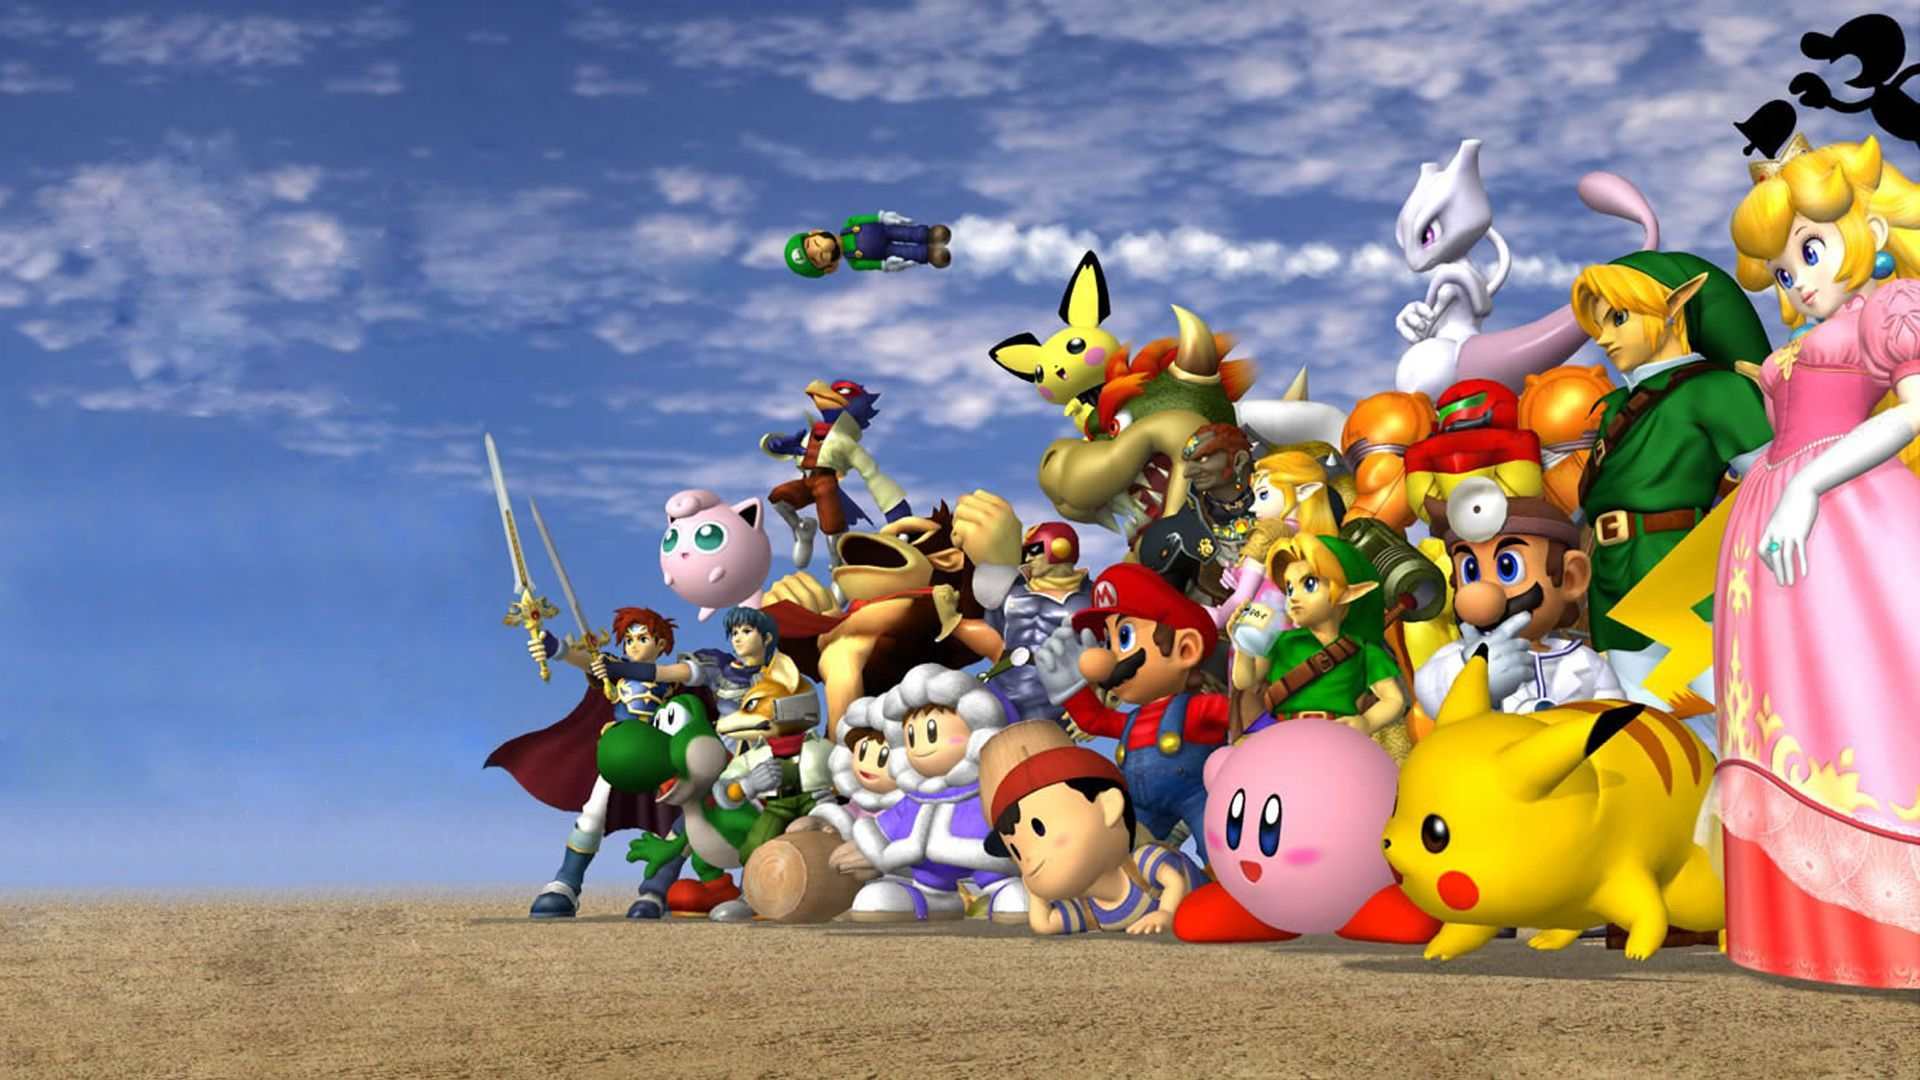 Video Game Collage Wallpaper Posted By Michelle Anderson